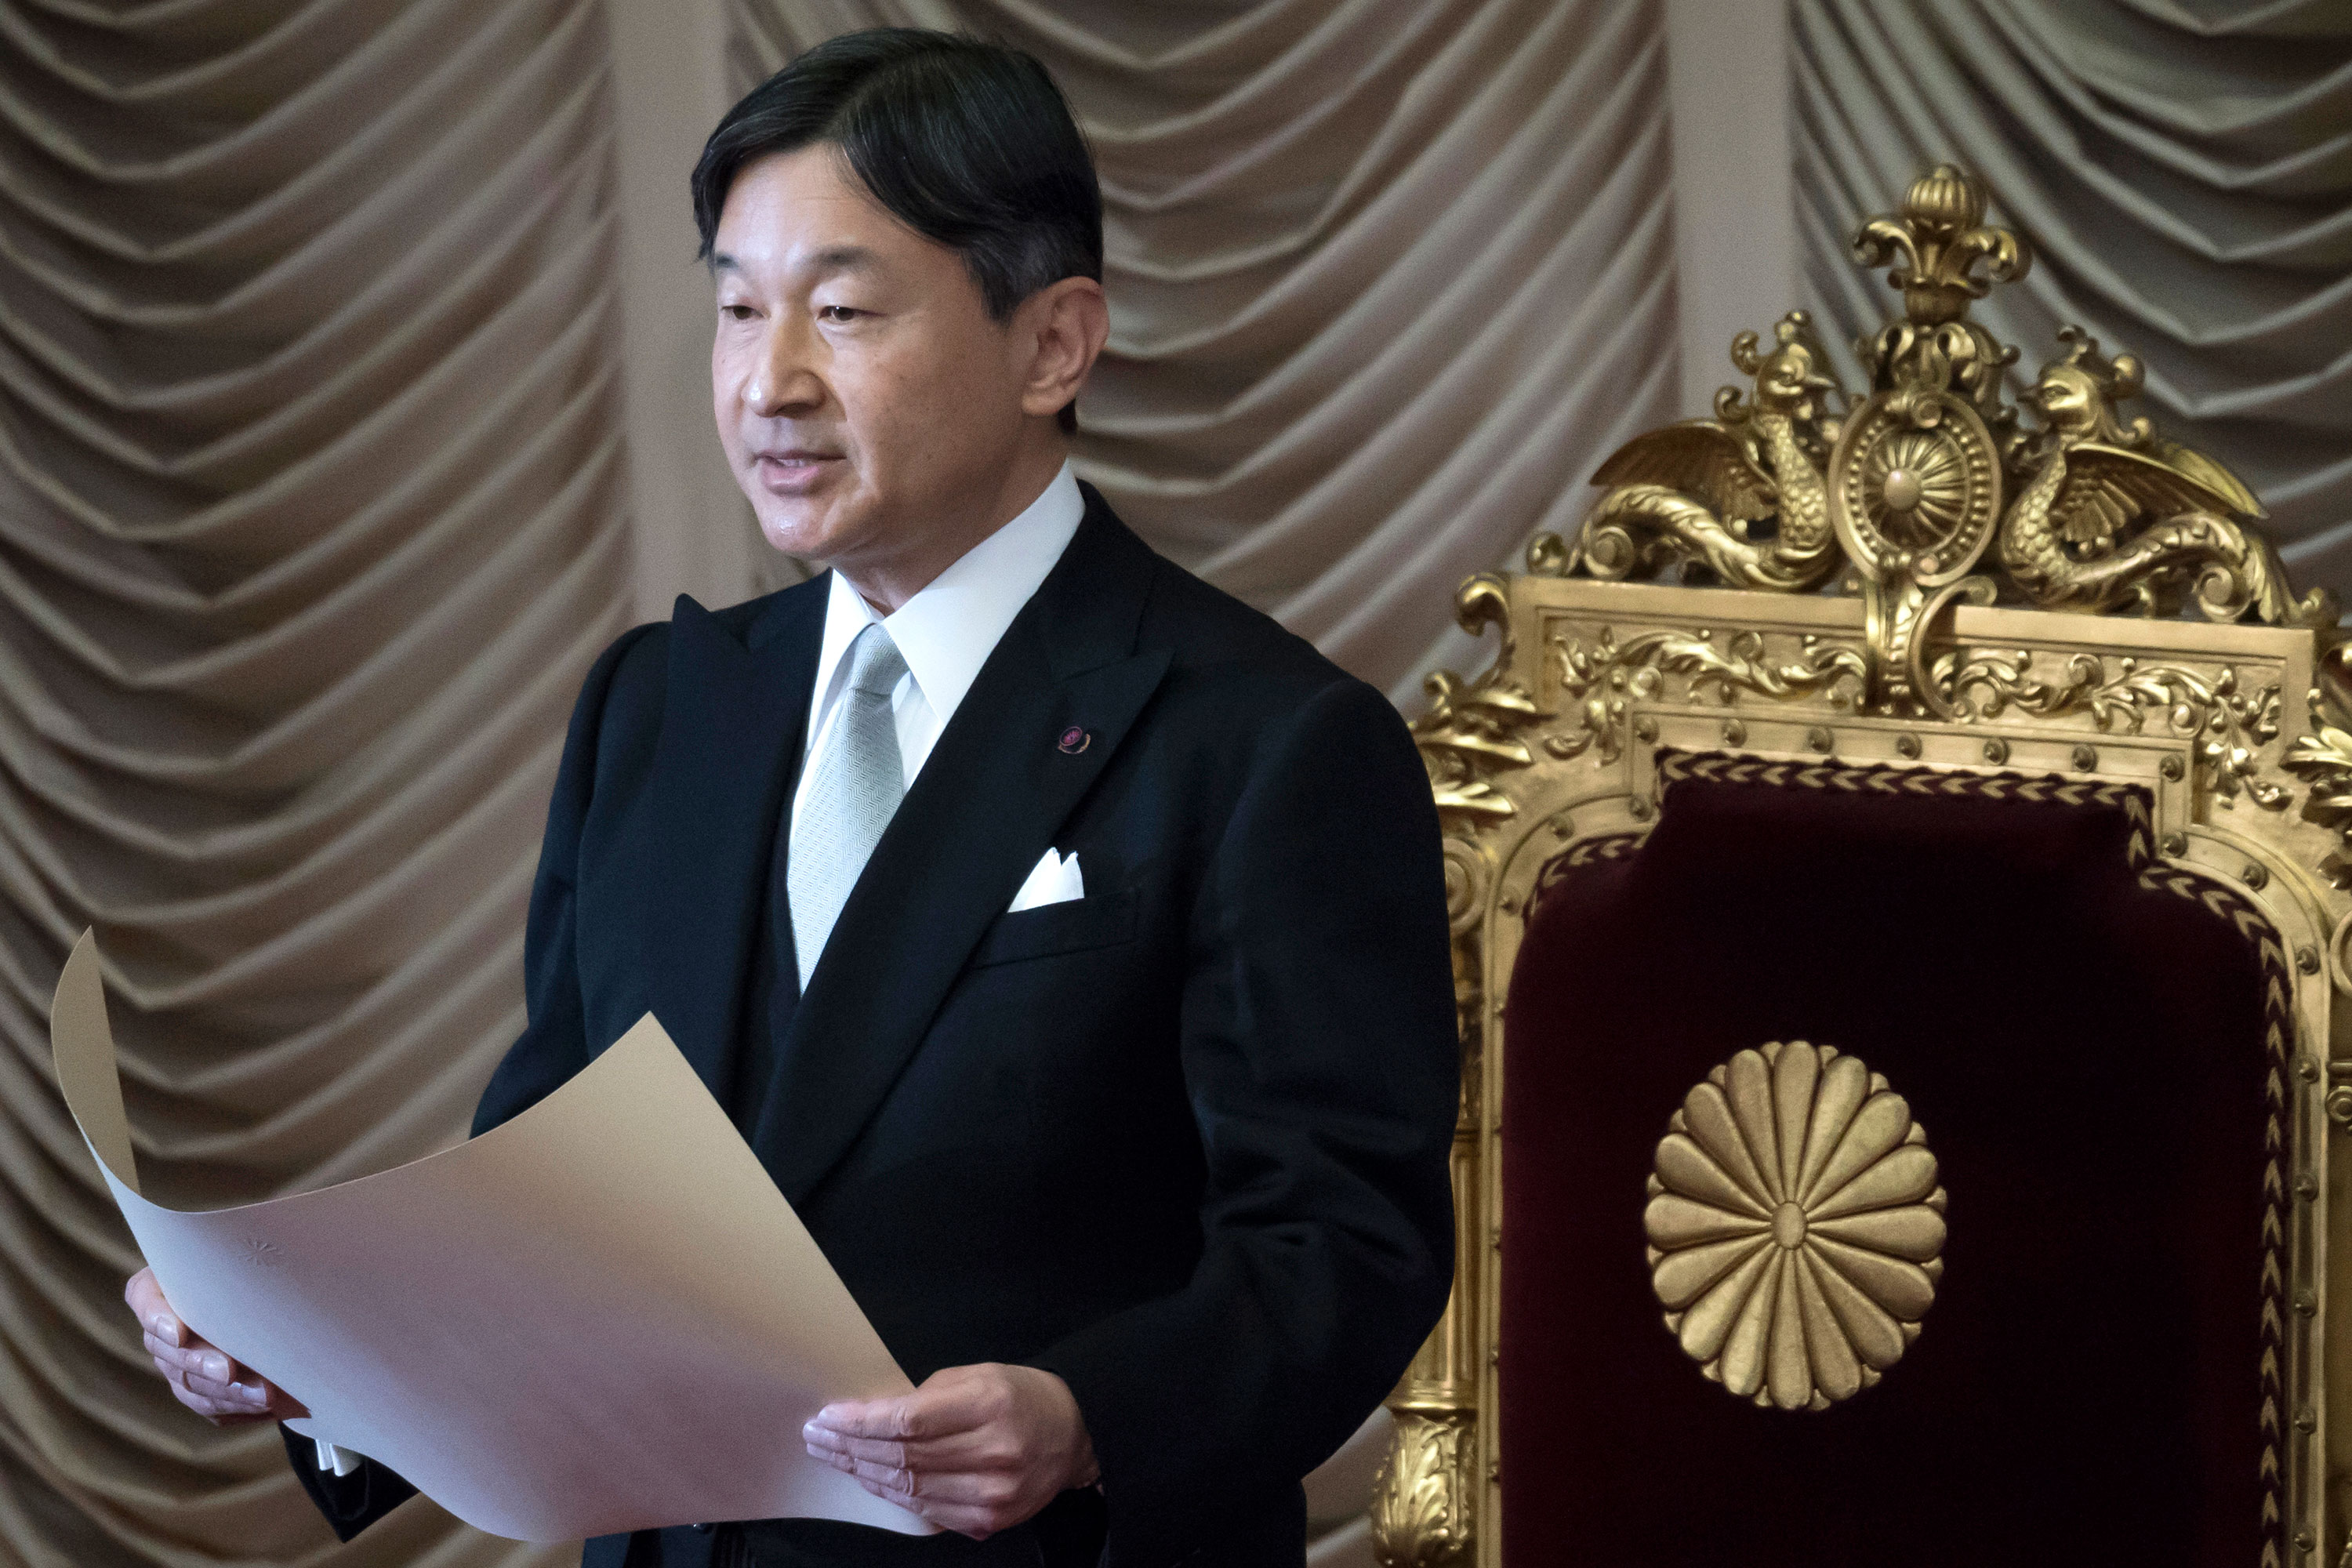 In this file photo, Japan's Emperor Naruhito gives an address at the opening of the 201st ordinary session of the Diet at the upper house of the parliament on January 20 in Tokyo.